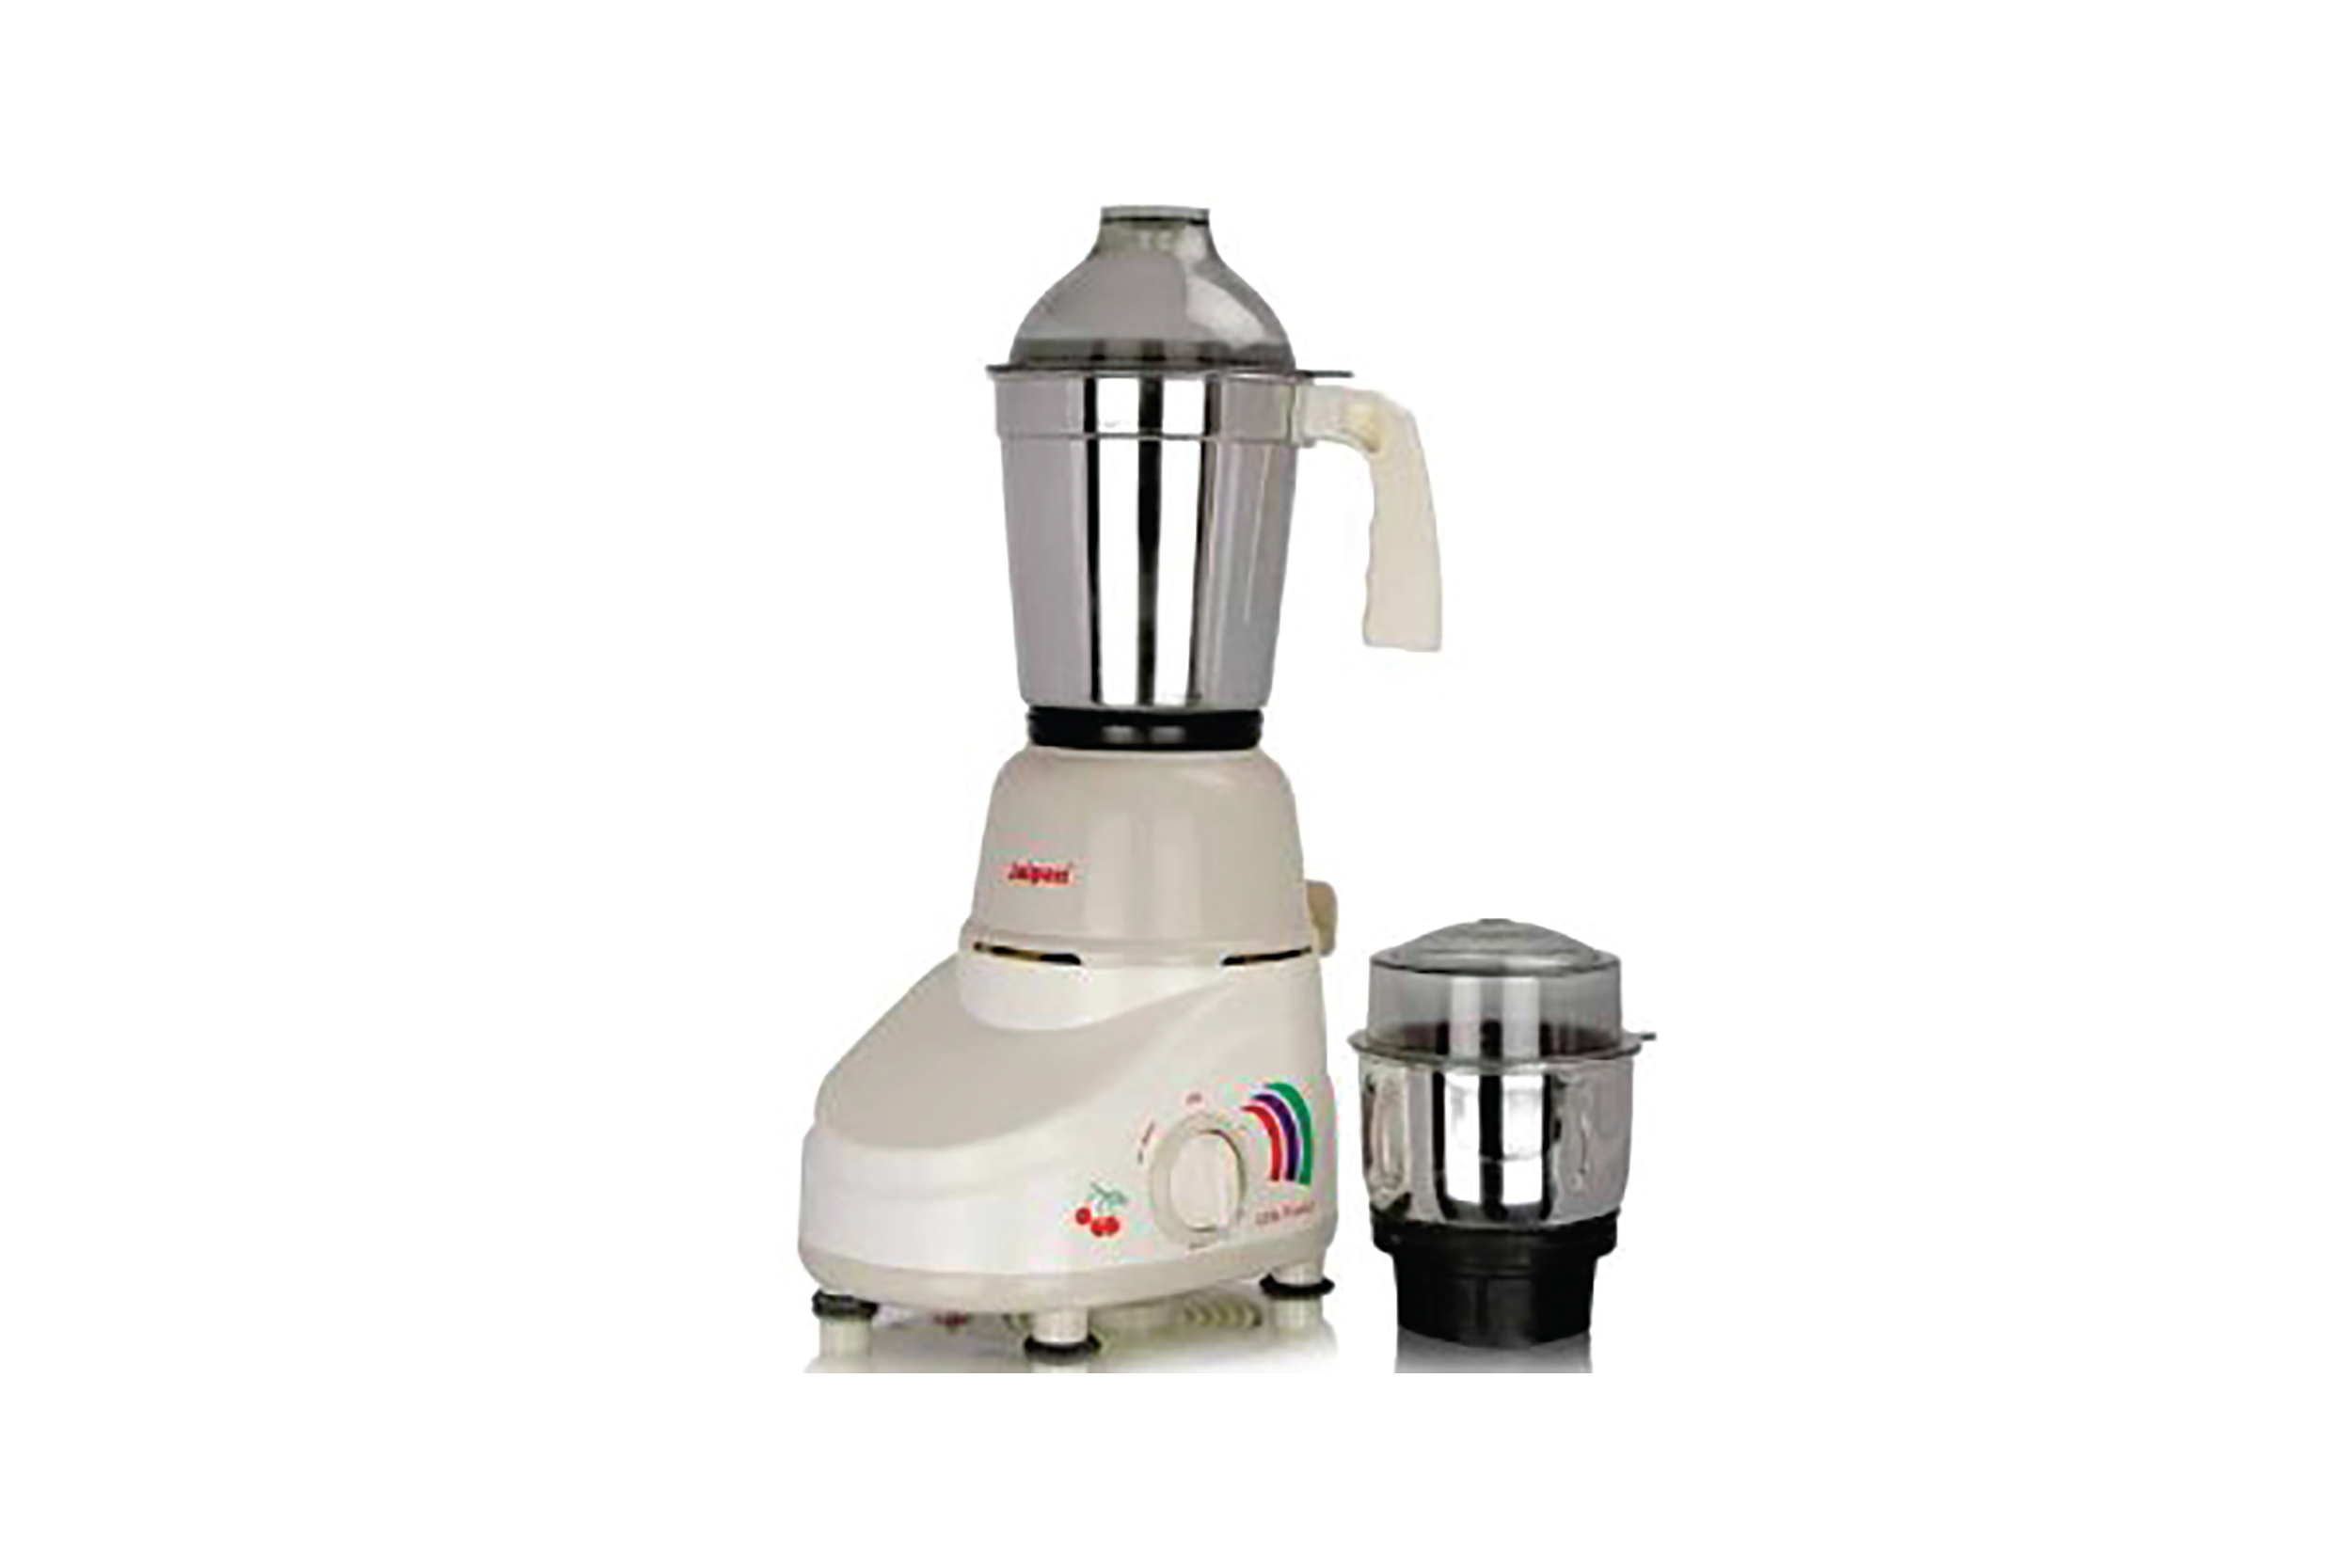 Jaipan JP_LM Little Master 350-Watt Mixer Grinder with 2 Stainless Steel Jars